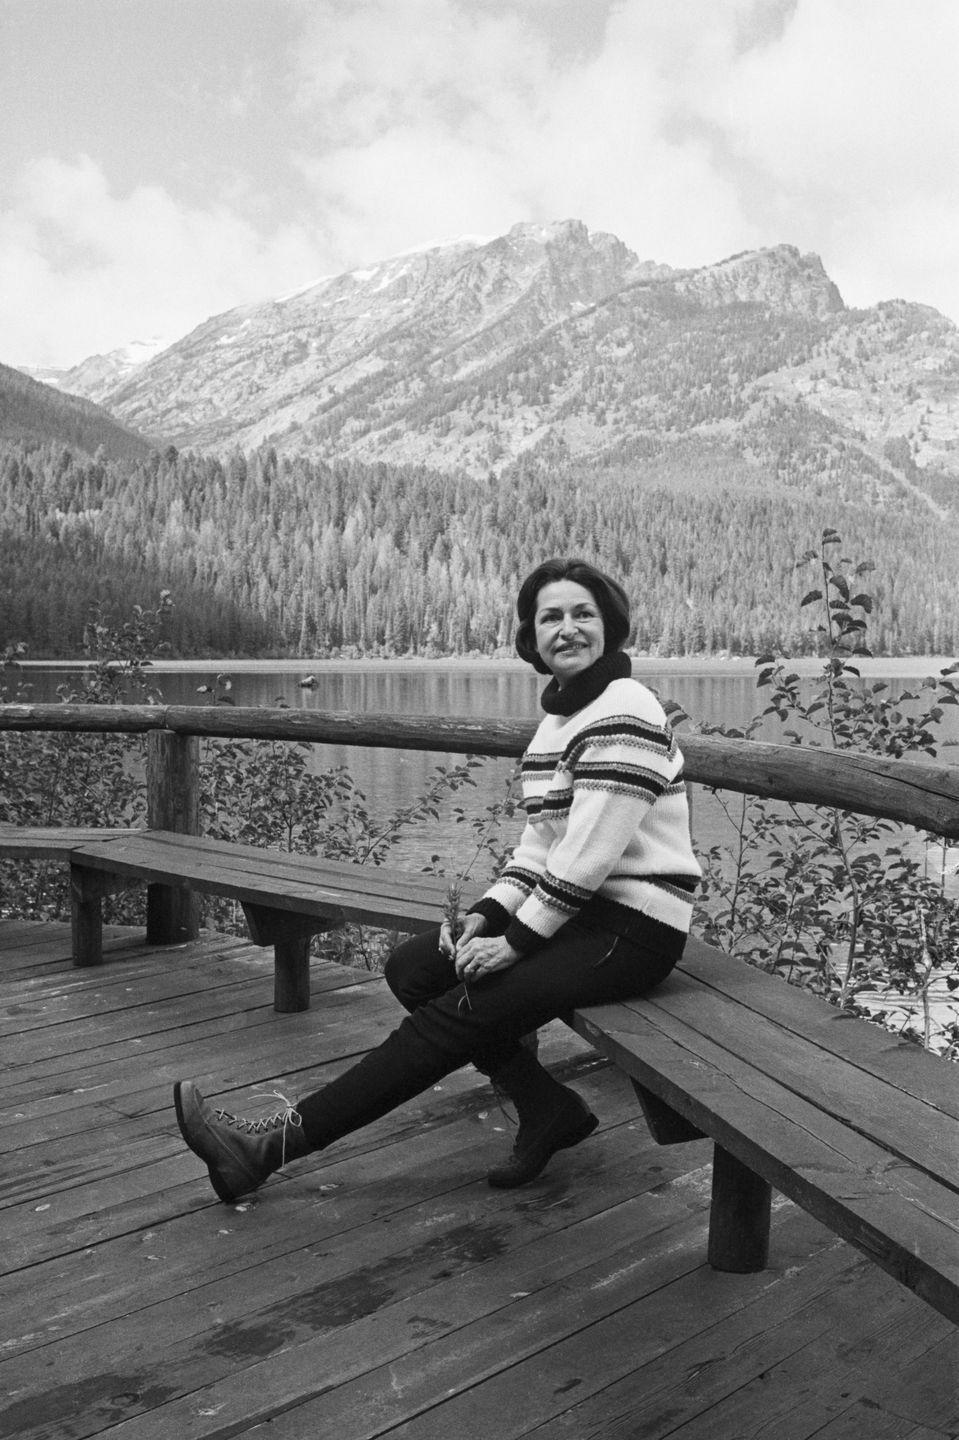 <p>Claudia Johnson wasn't necessarily into the glitz and glamour like other first ladies. Instead, she's remembered for her more casual looks, like this mountain-chic get-up she wore on a visit to Jackson Lake in Wyoming.</p>